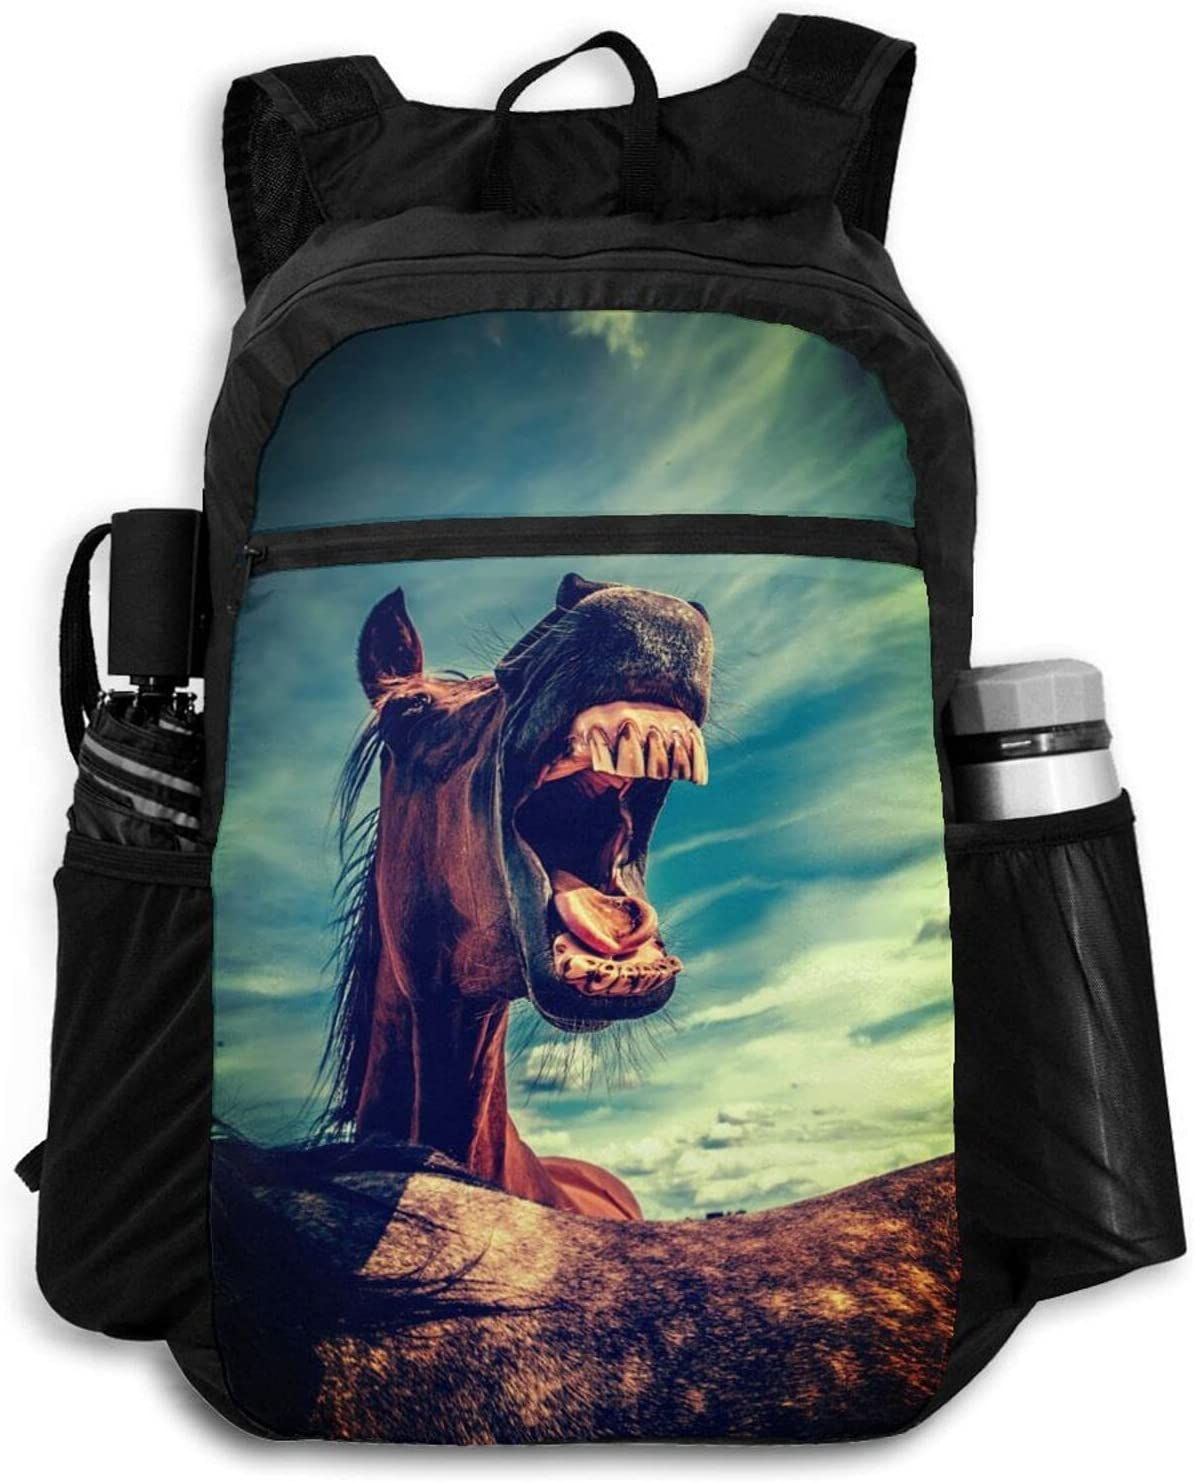 Zolama Funny 2021 spring and summer new Horse Backpacks Japan's largest assortment for Cute Men Packable Women Daypack